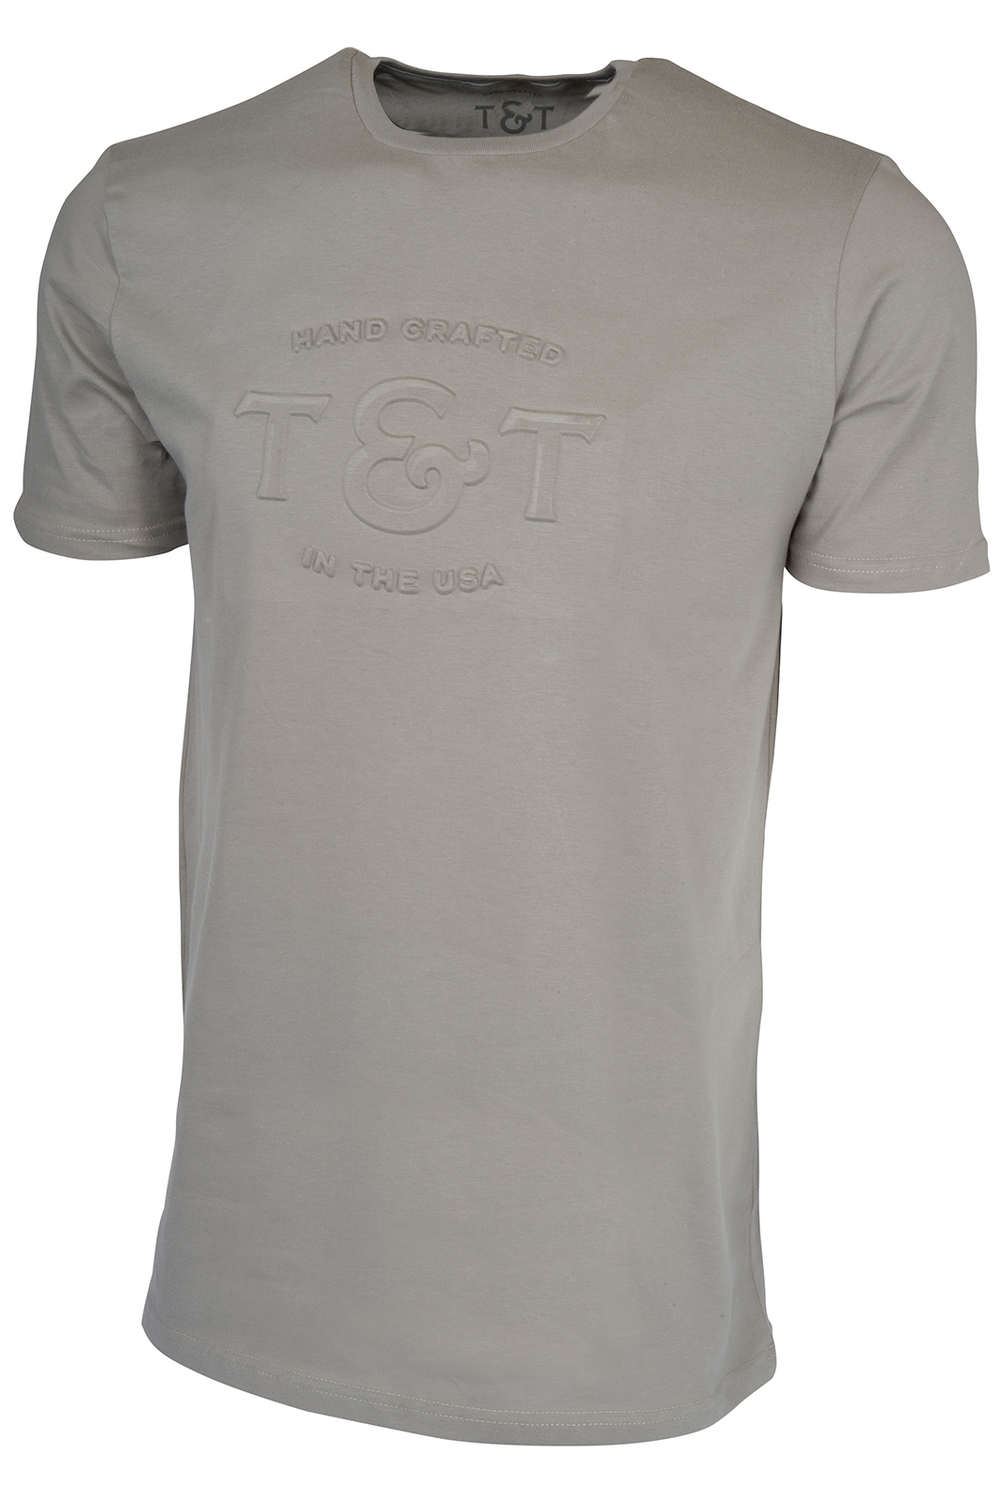 Amplified Monogram T&T T-Shirt - Khaki